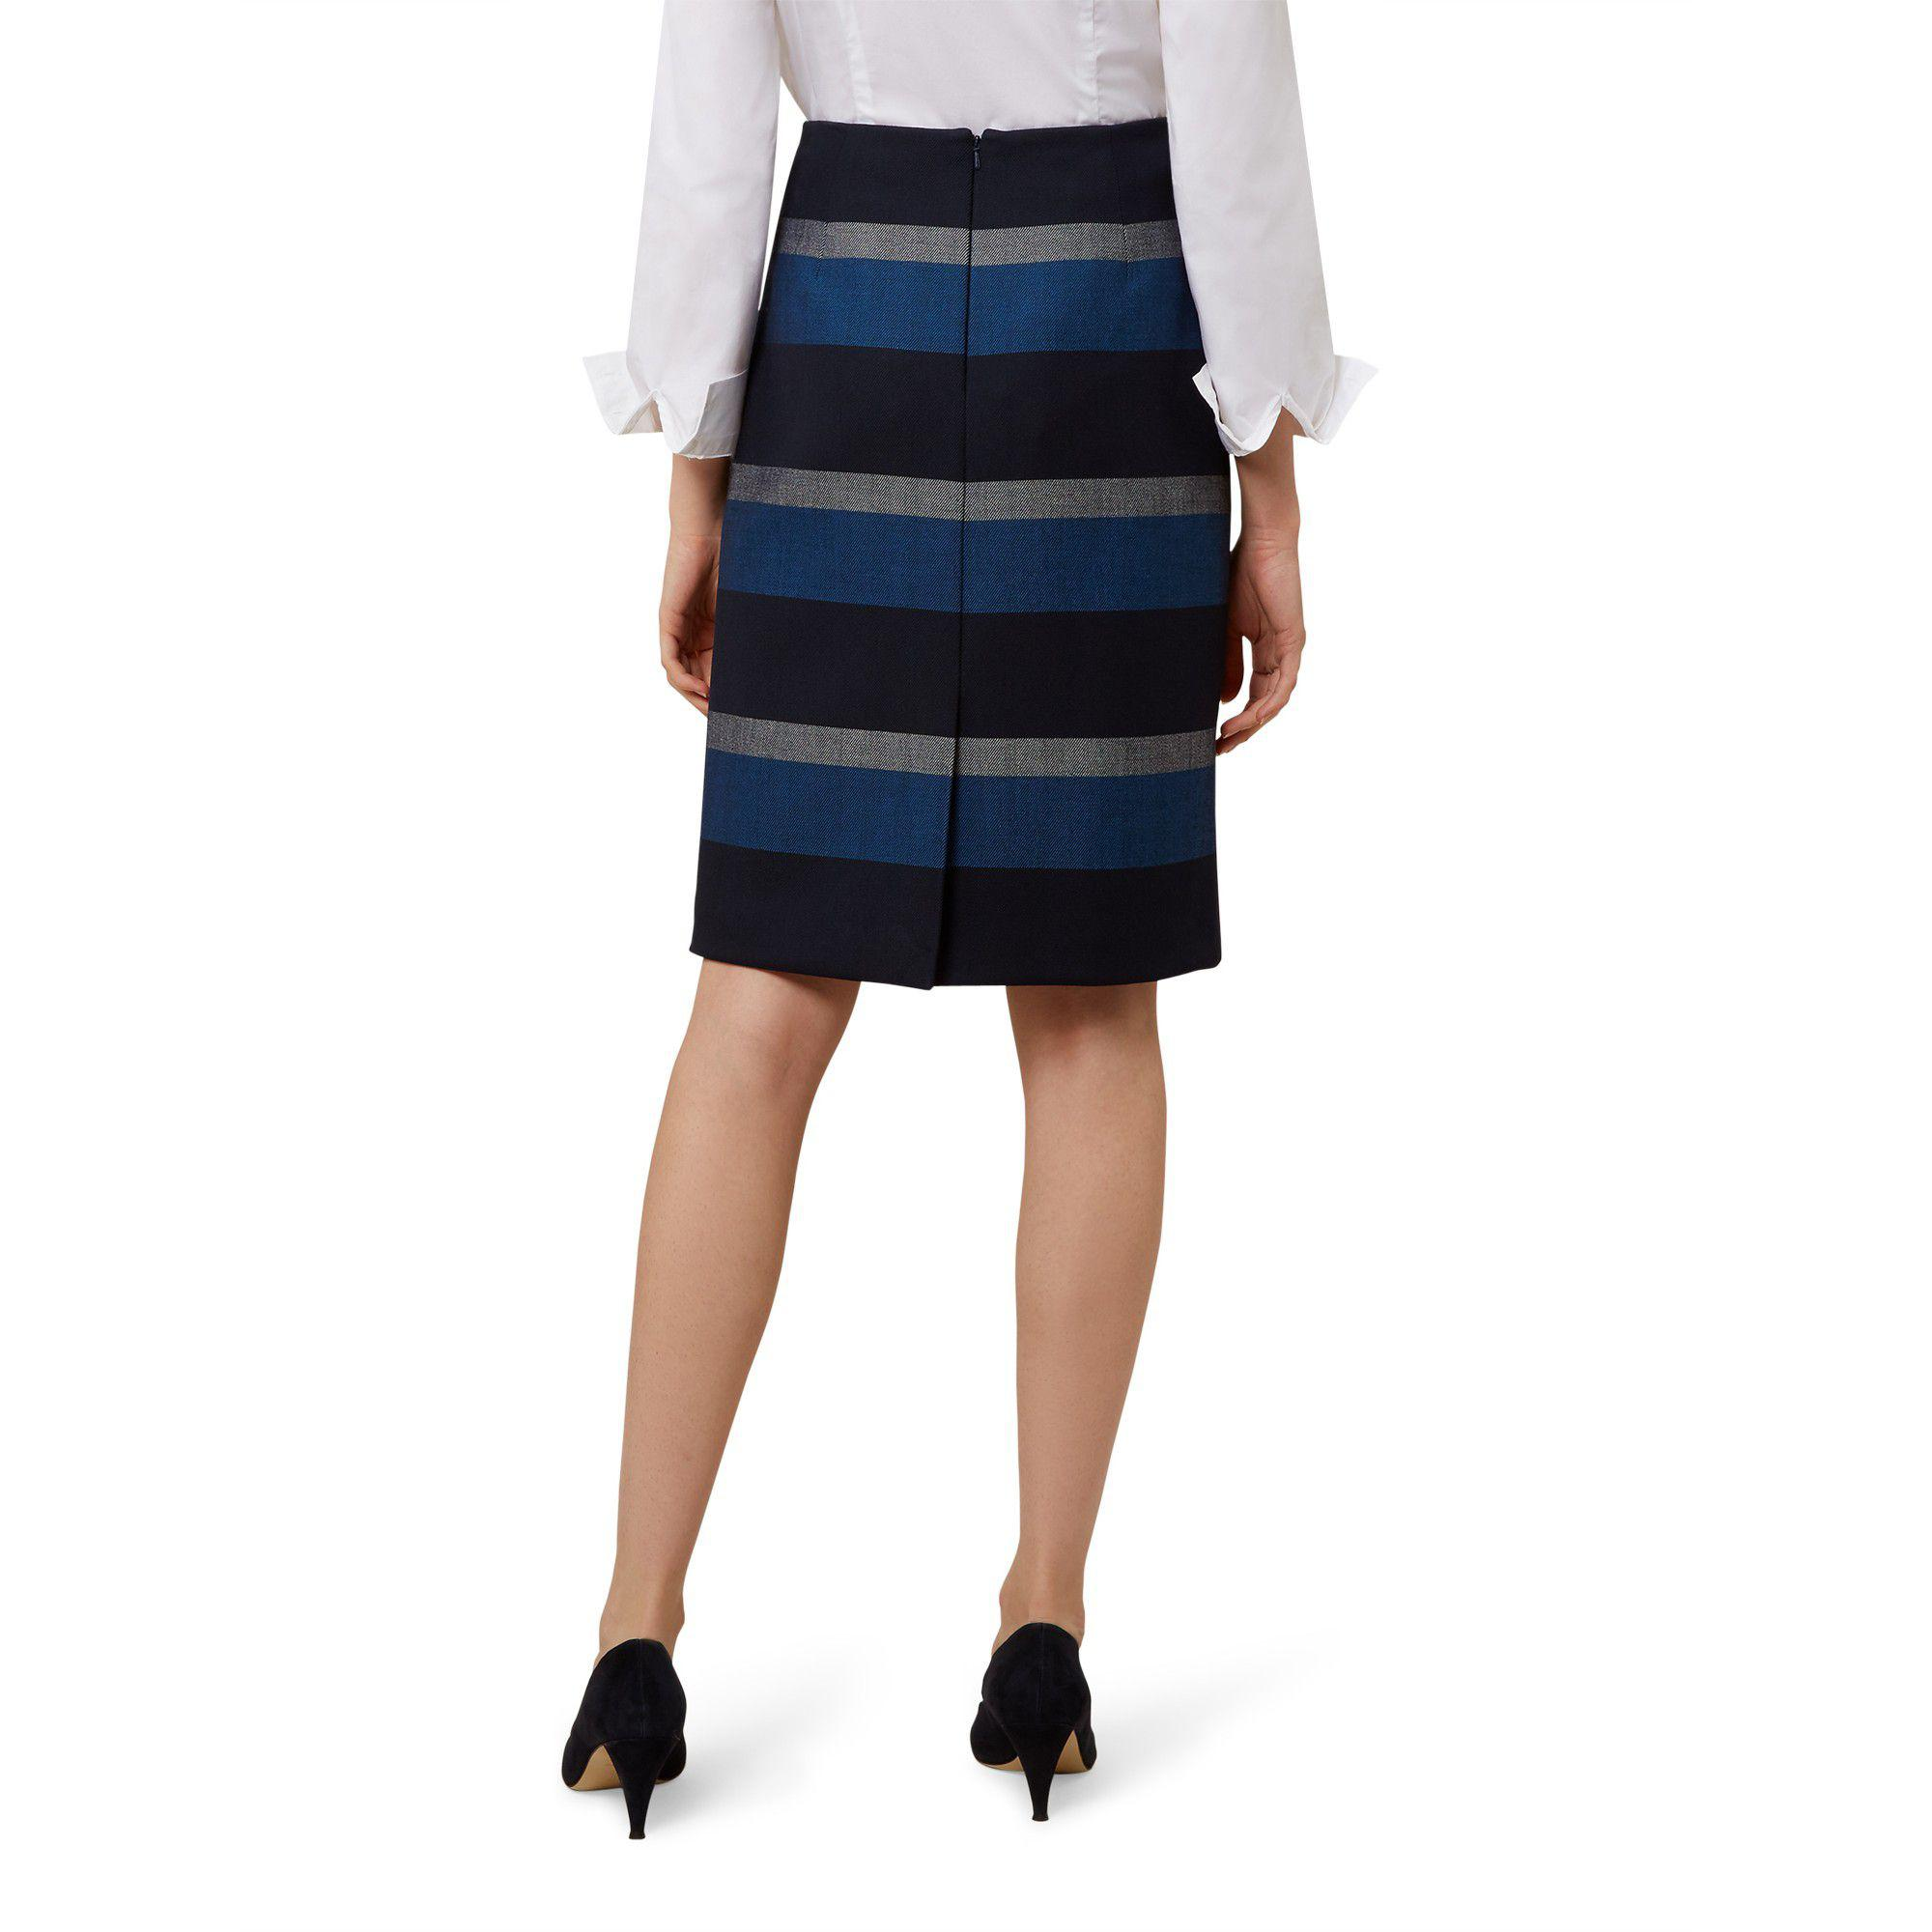 0056924cc Hobbs Blue 'nora' Skirt in Blue - Save 19% - Lyst